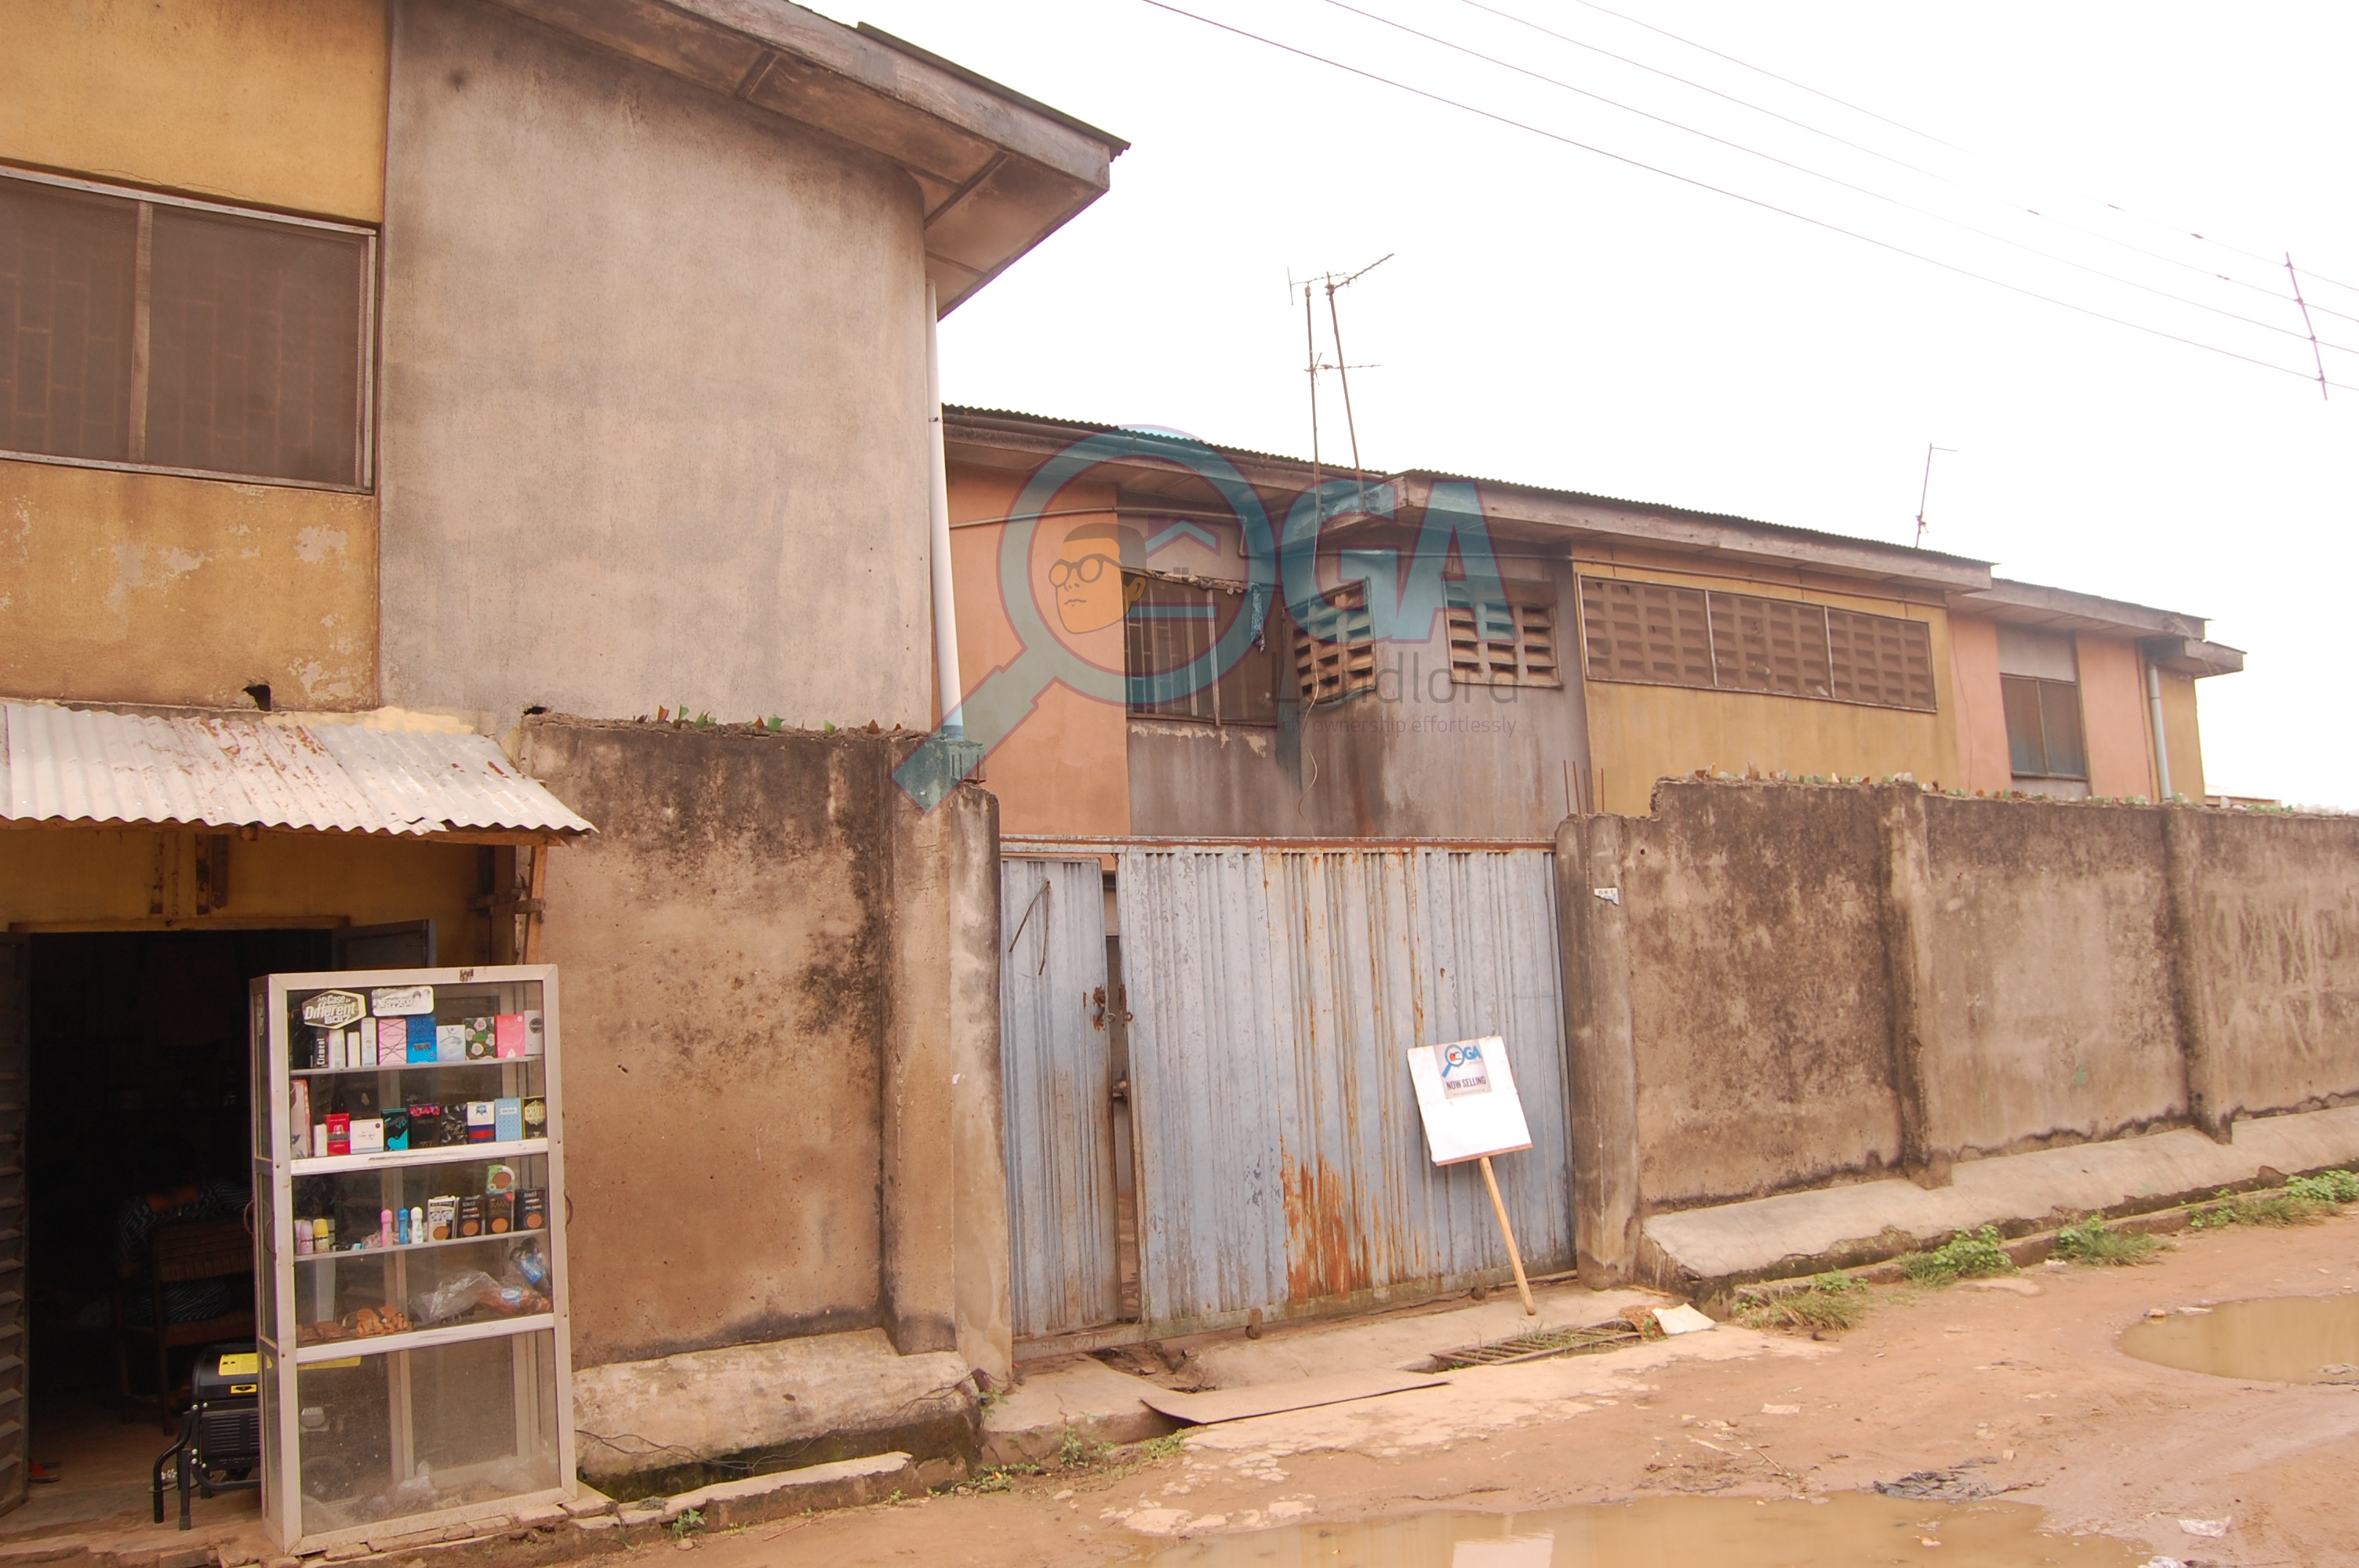 A 2 Plot Fenced Compound with 2 Bungalows for Sale at Sango Otta, Ogun State